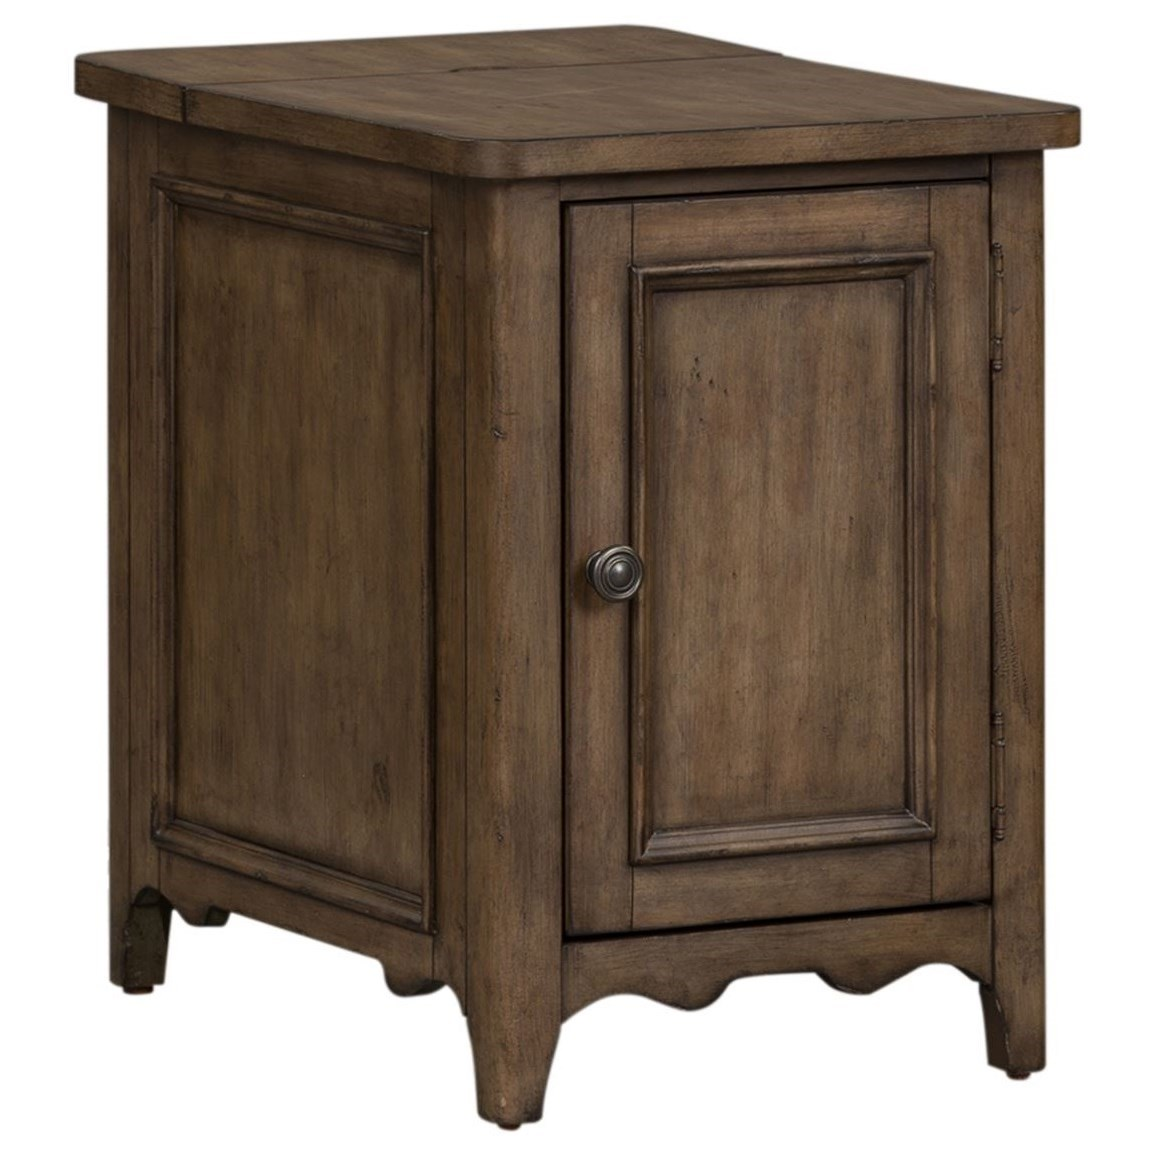 Parisian Marketplace Door Chairside Table with Charging Station by Libby at Walker's Furniture